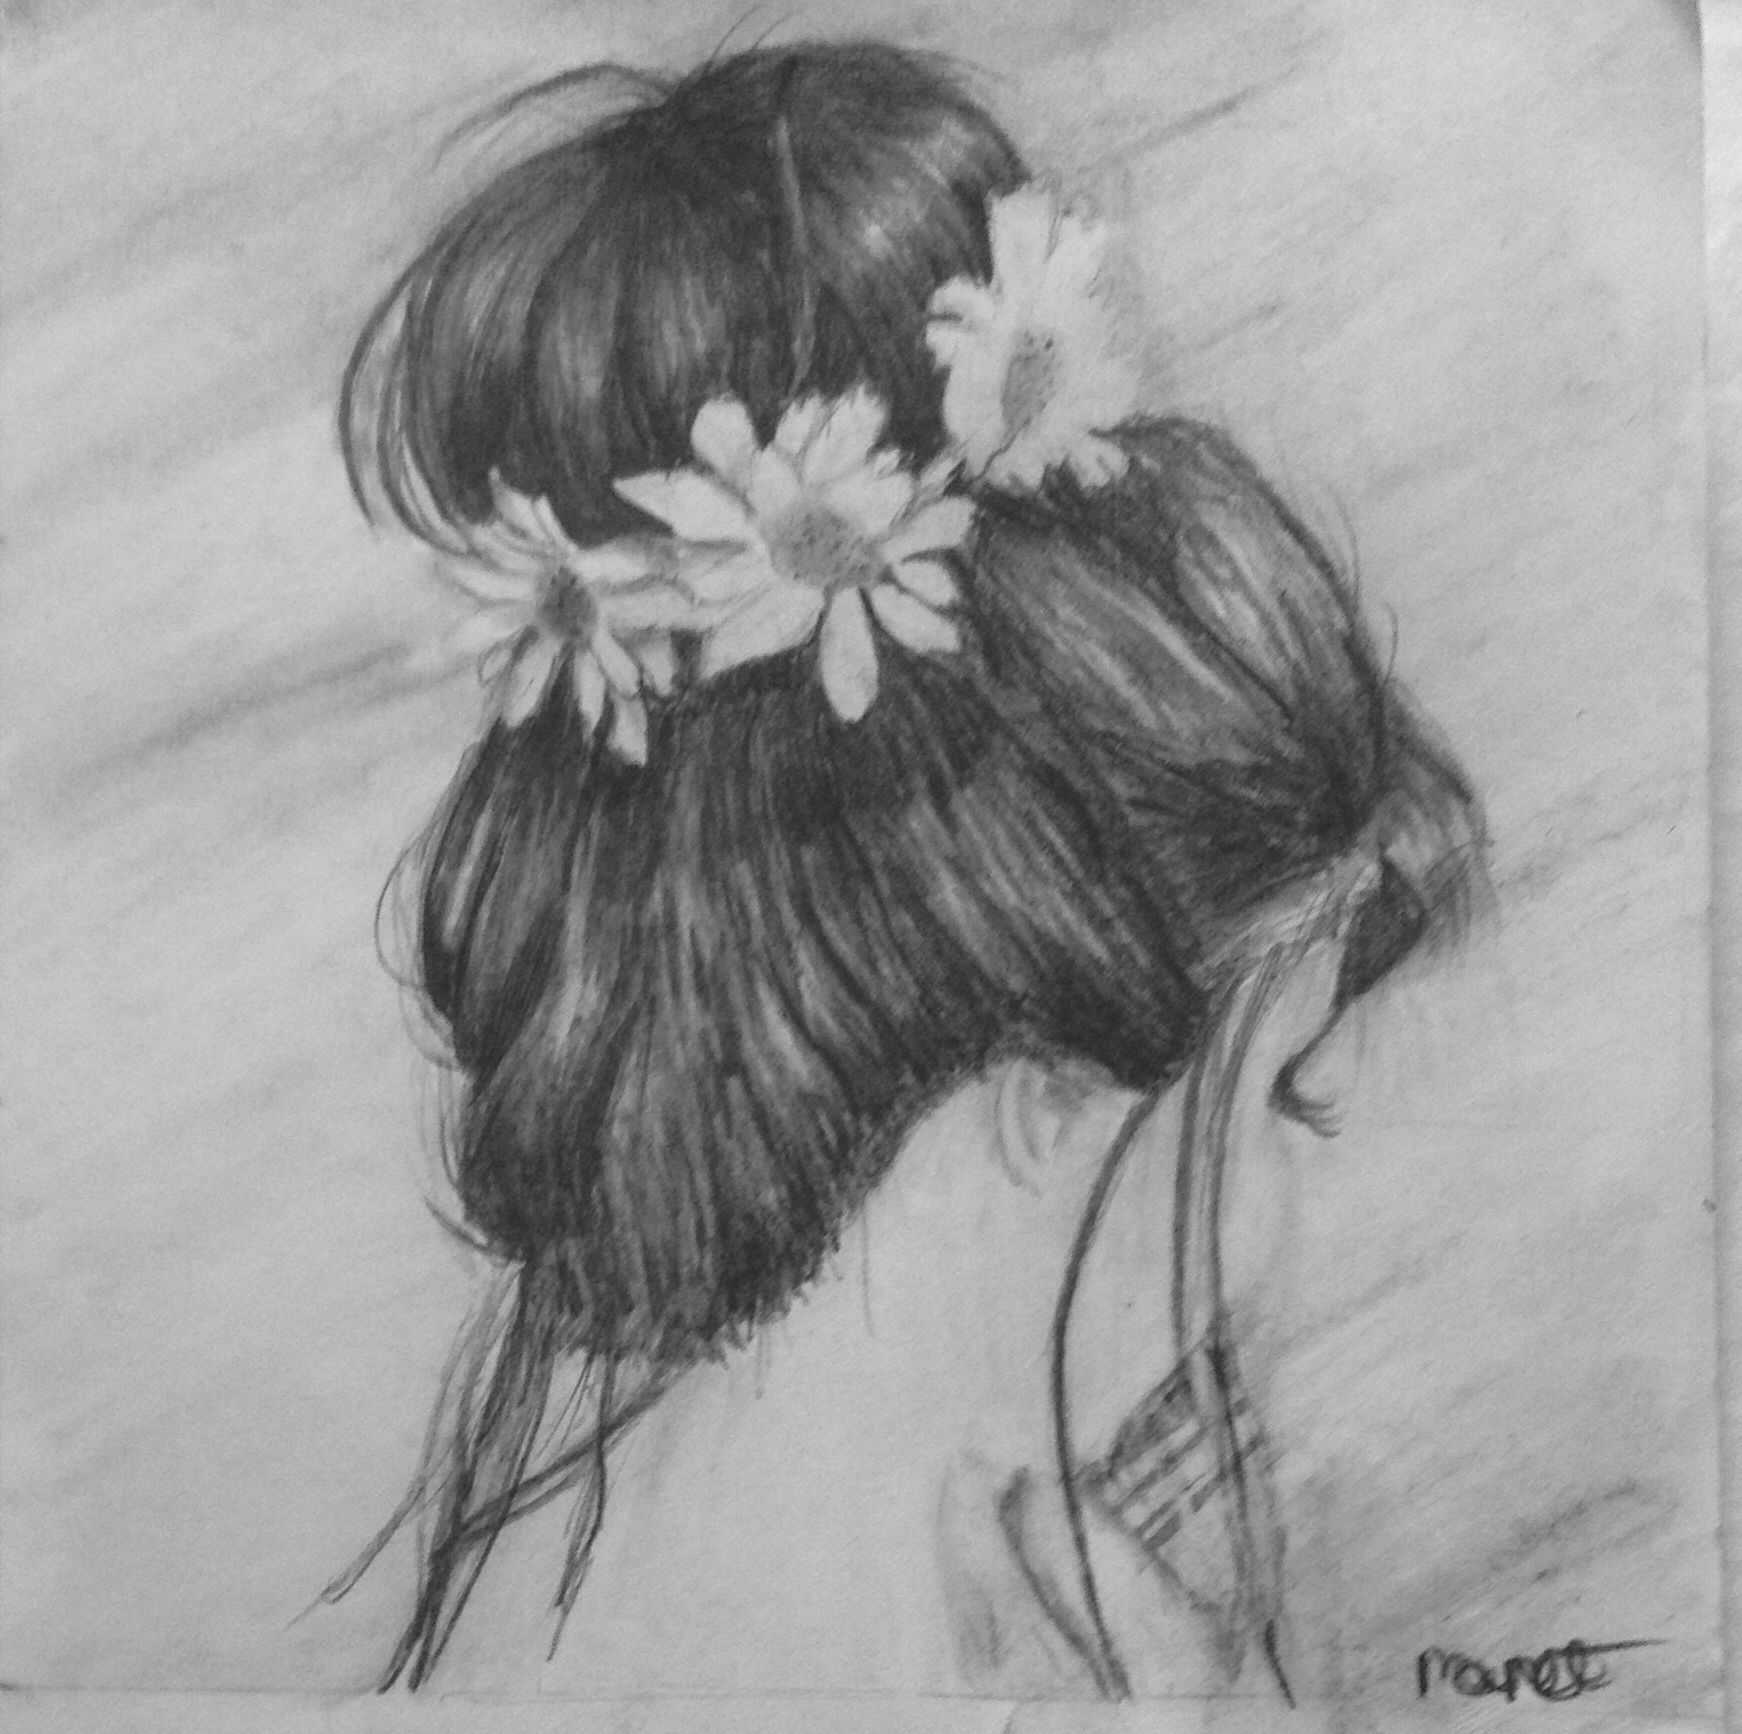 Black and white drawing of a girl with a flower headband and